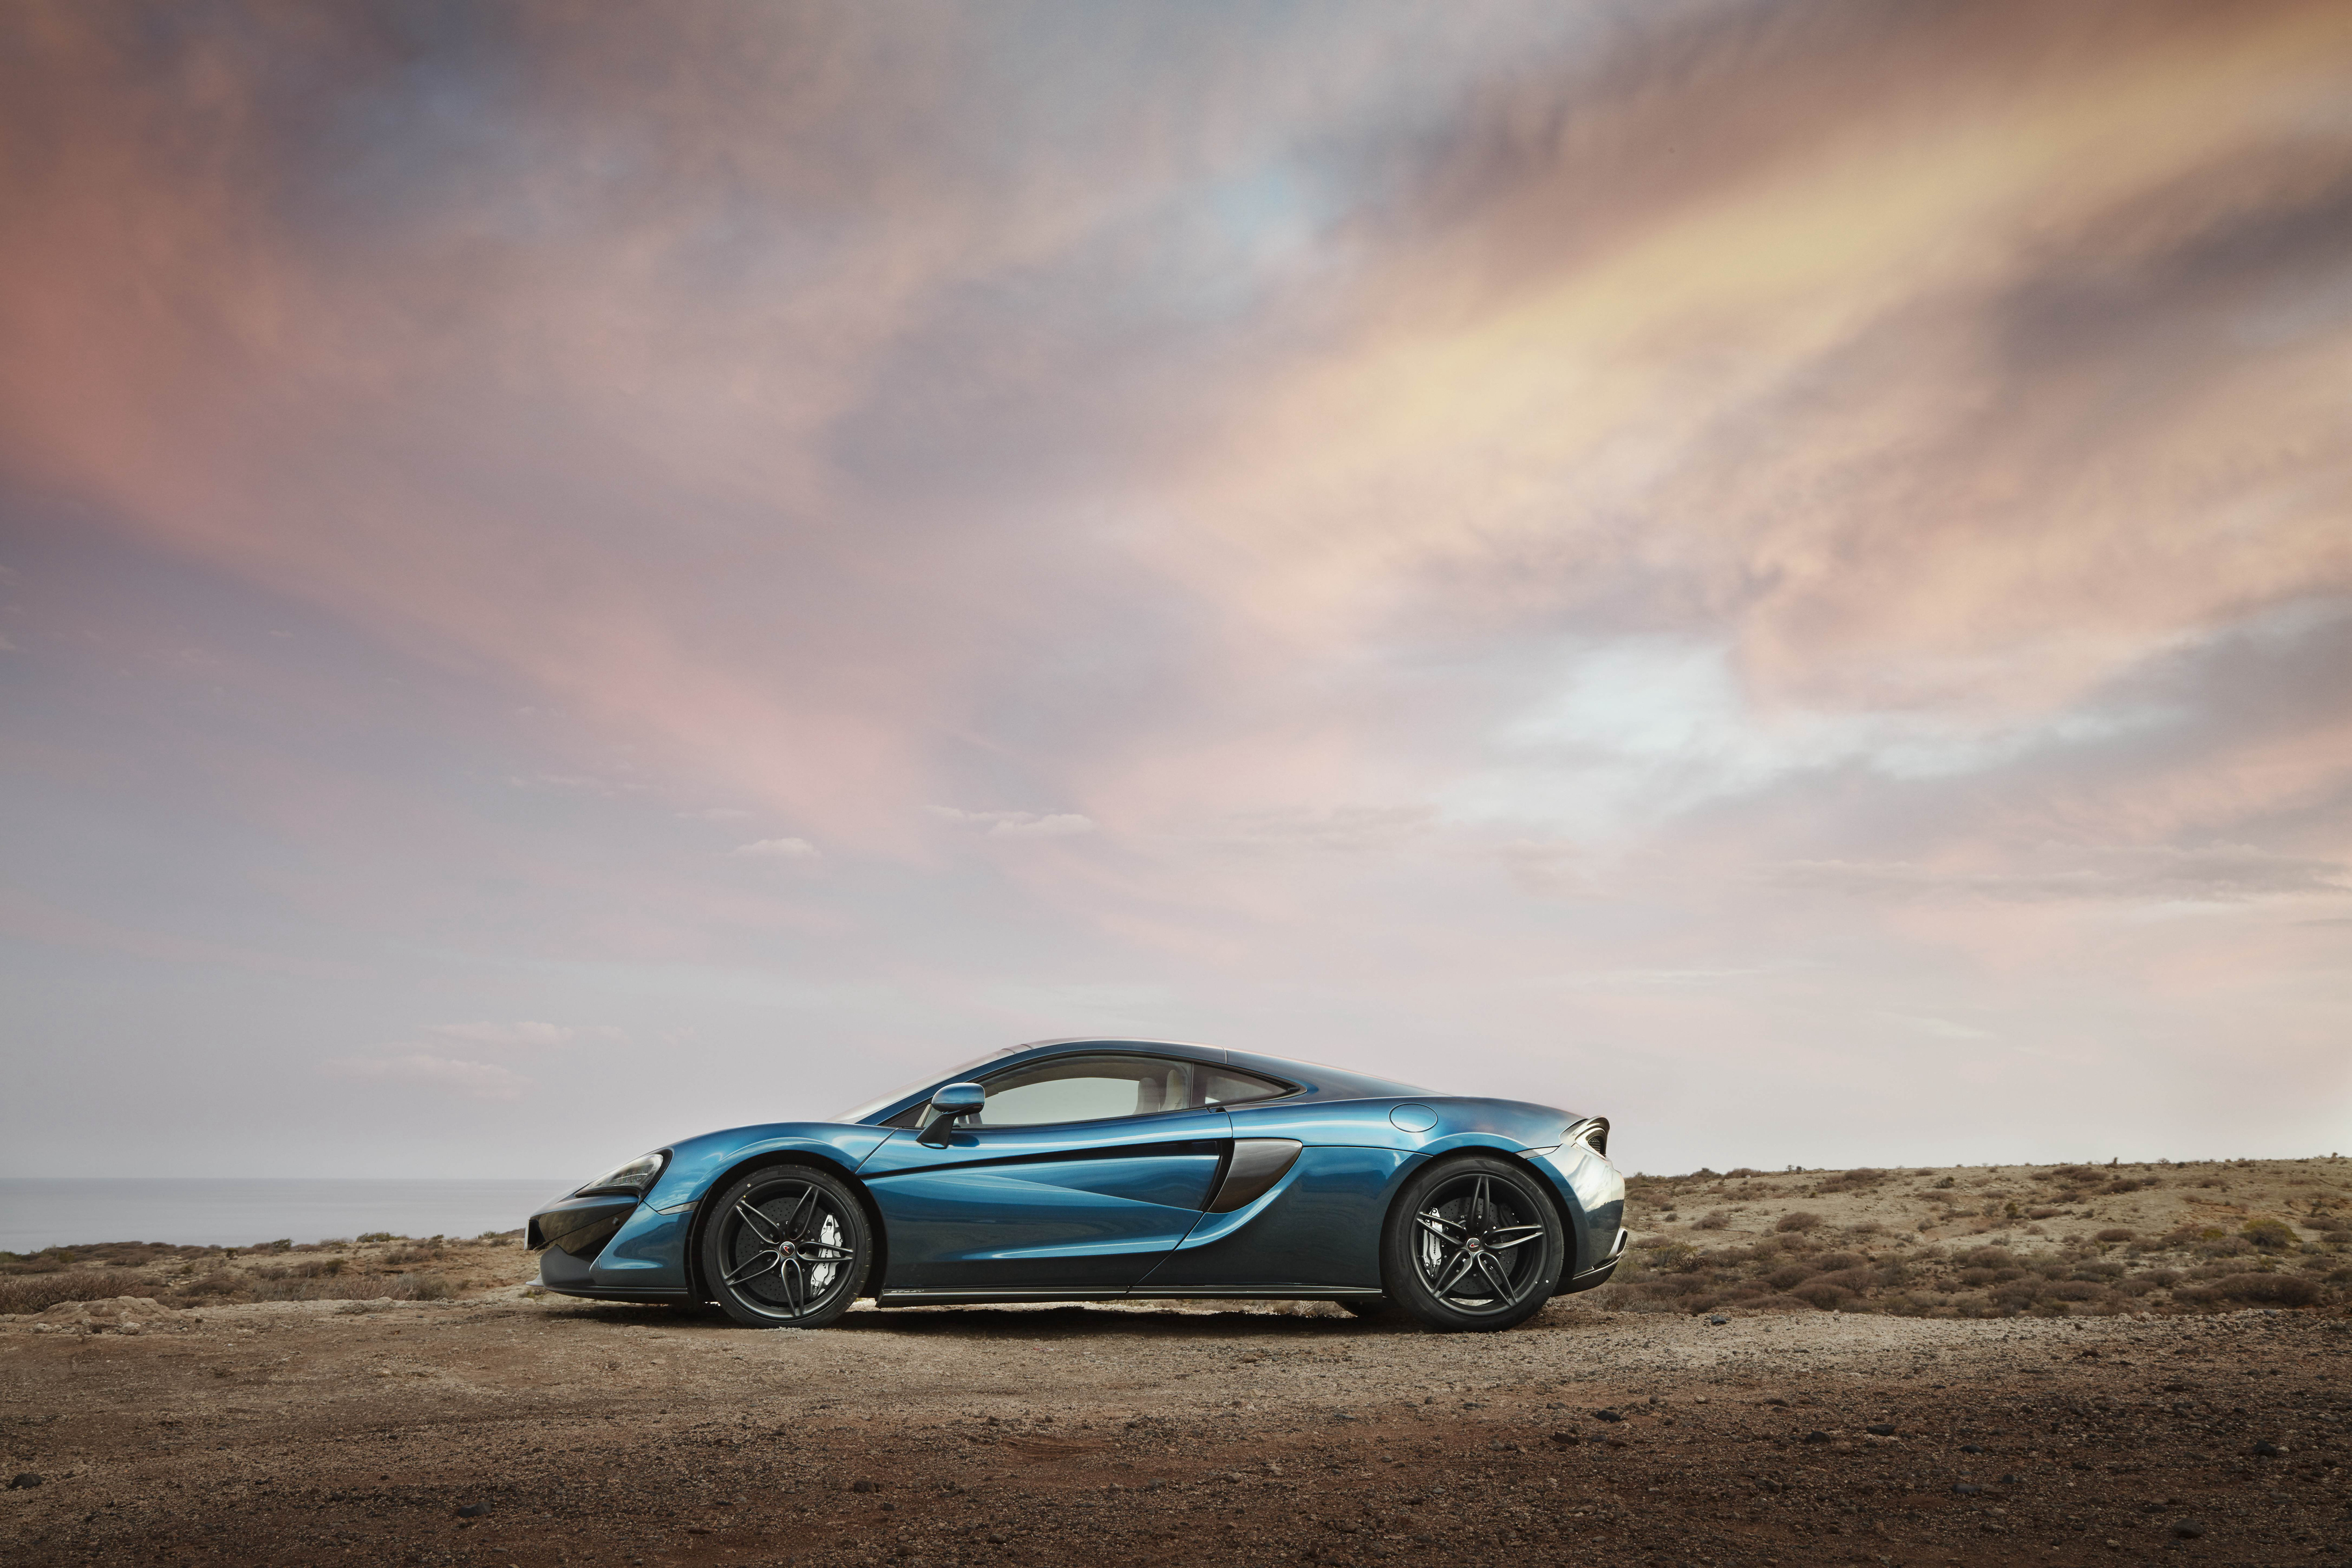 118522 download wallpaper Cars, Mclaren, 570Gt, Side View, Auto screensavers and pictures for free